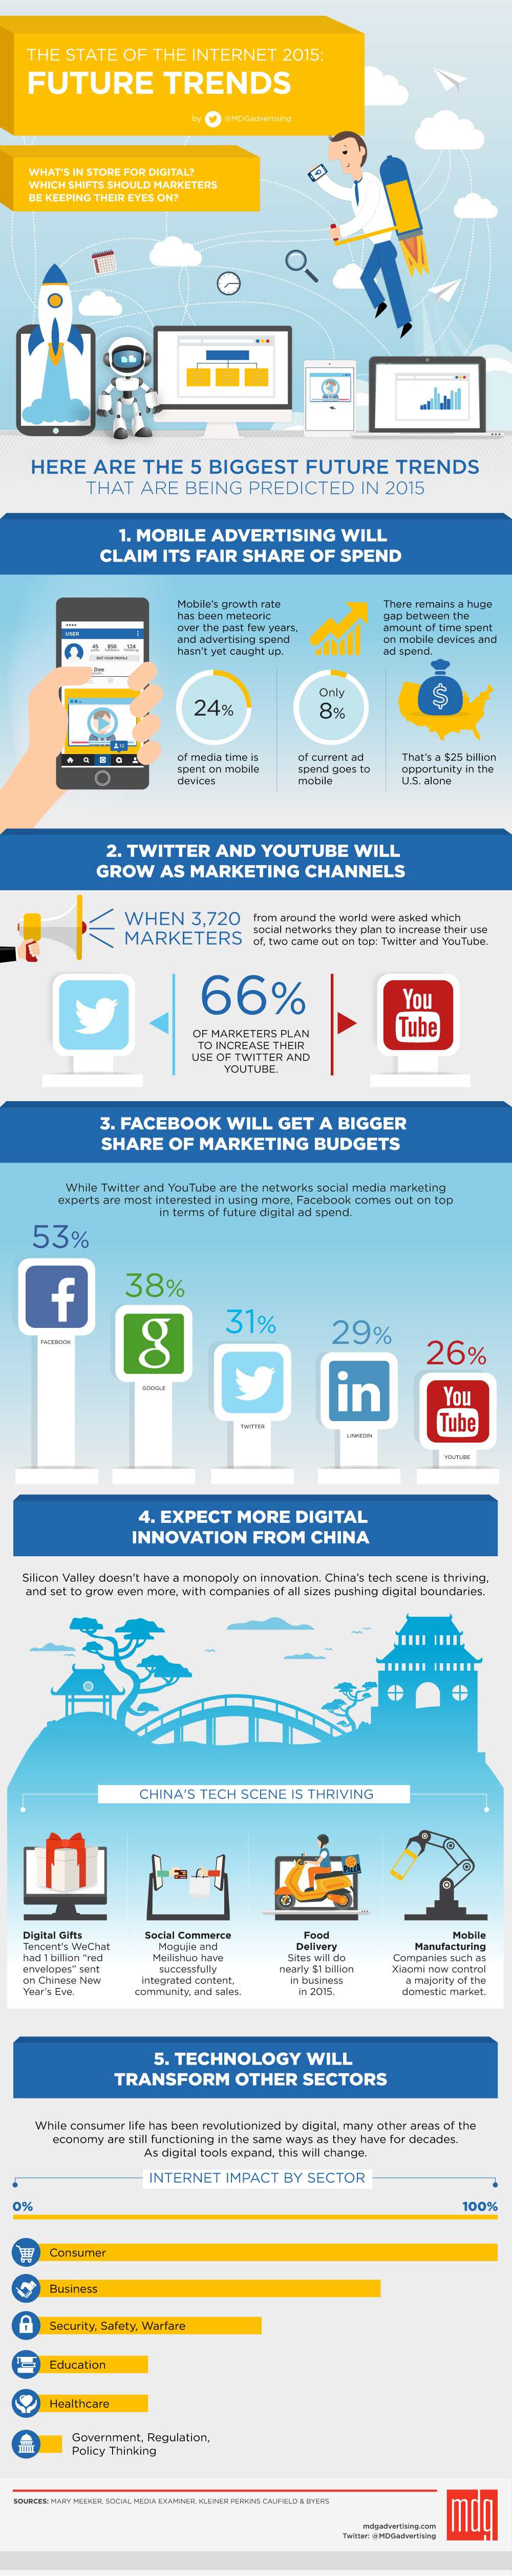 Here are the 5 biggest future trends that being predicted in 2015 - #infographic